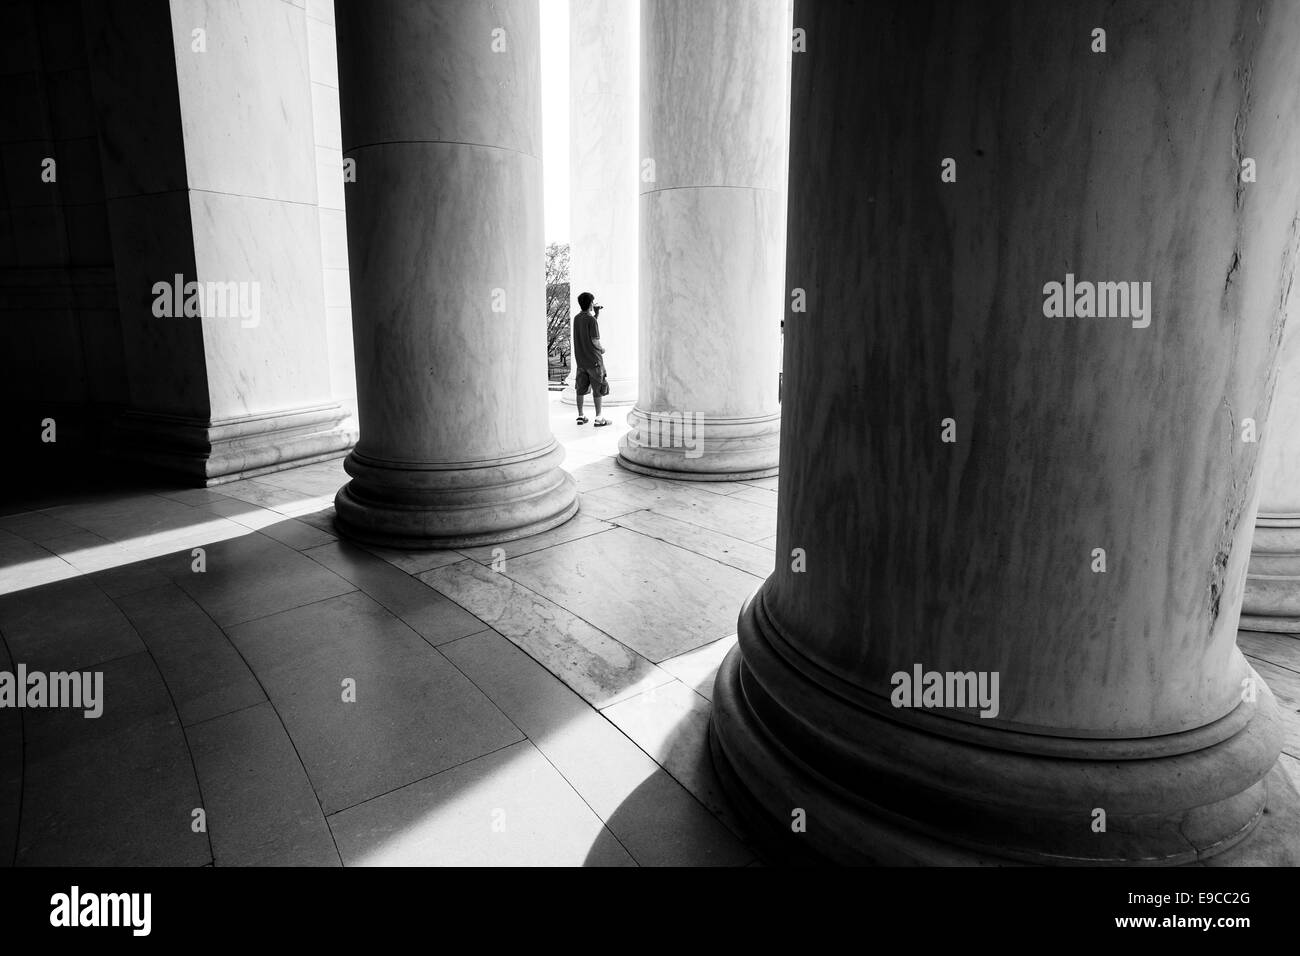 A boy stands silhouetted between the massive marble columns of the Jefferson Memorial in Washington, DC. - Stock Image